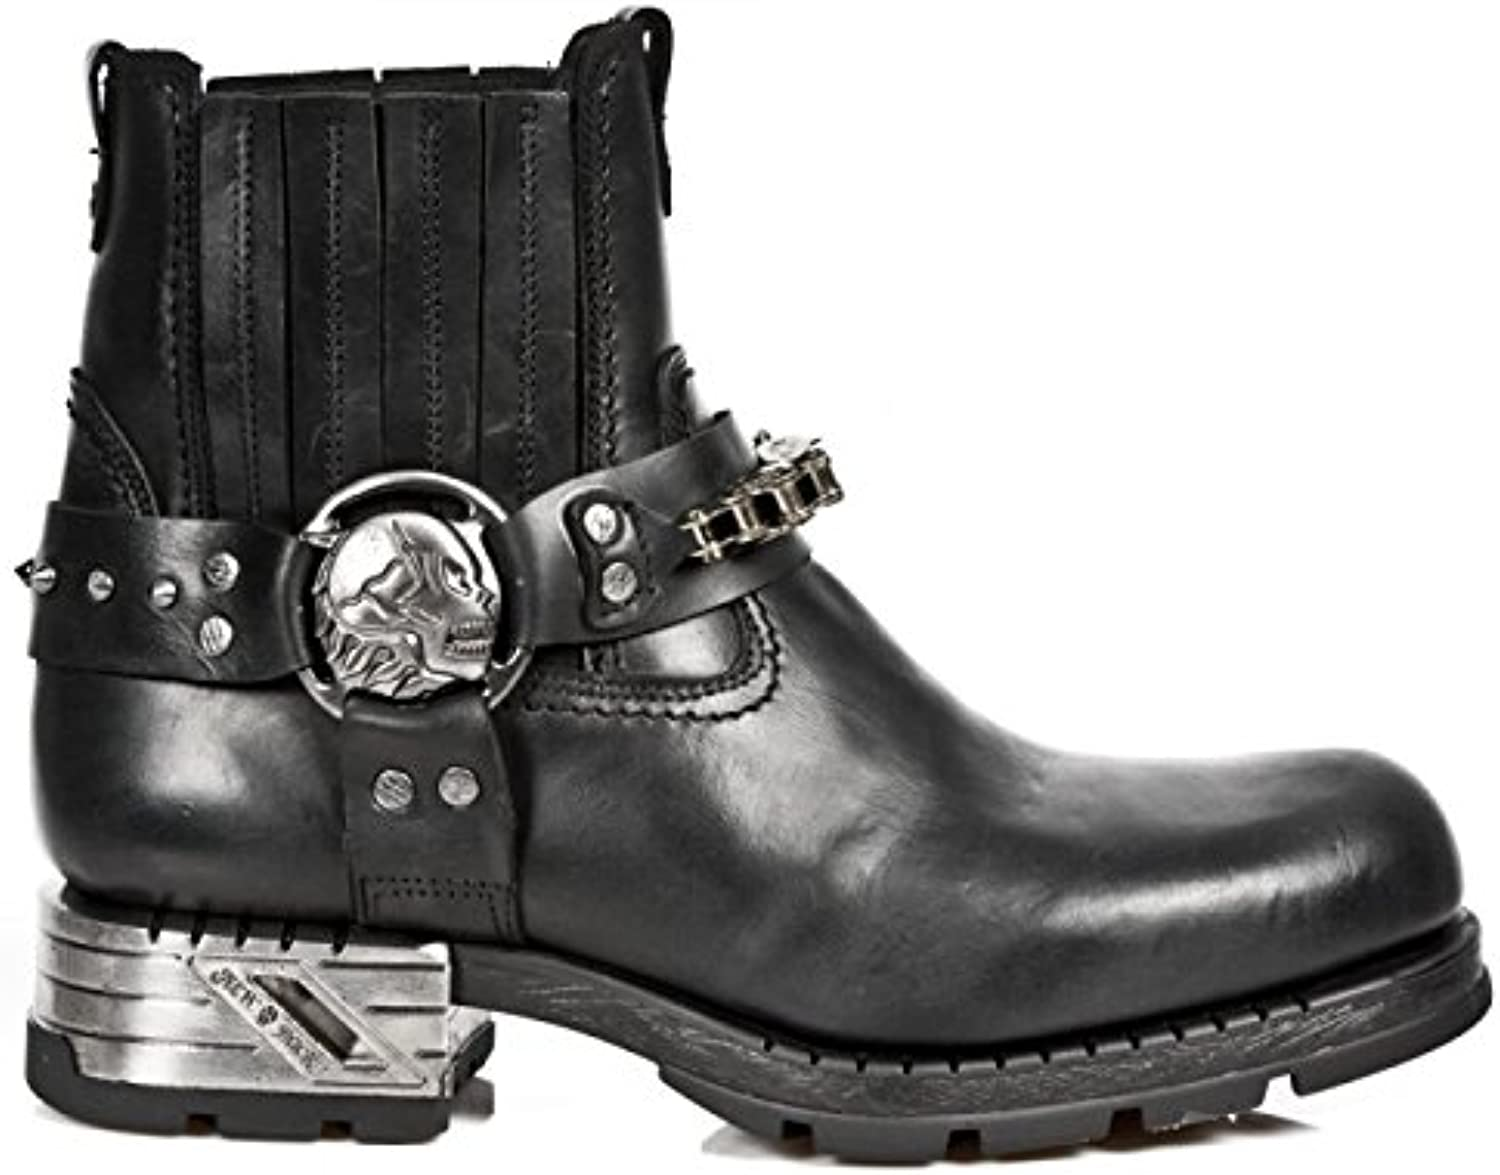 New Rock - Boots & Shoes Botas estilo motero Hombre